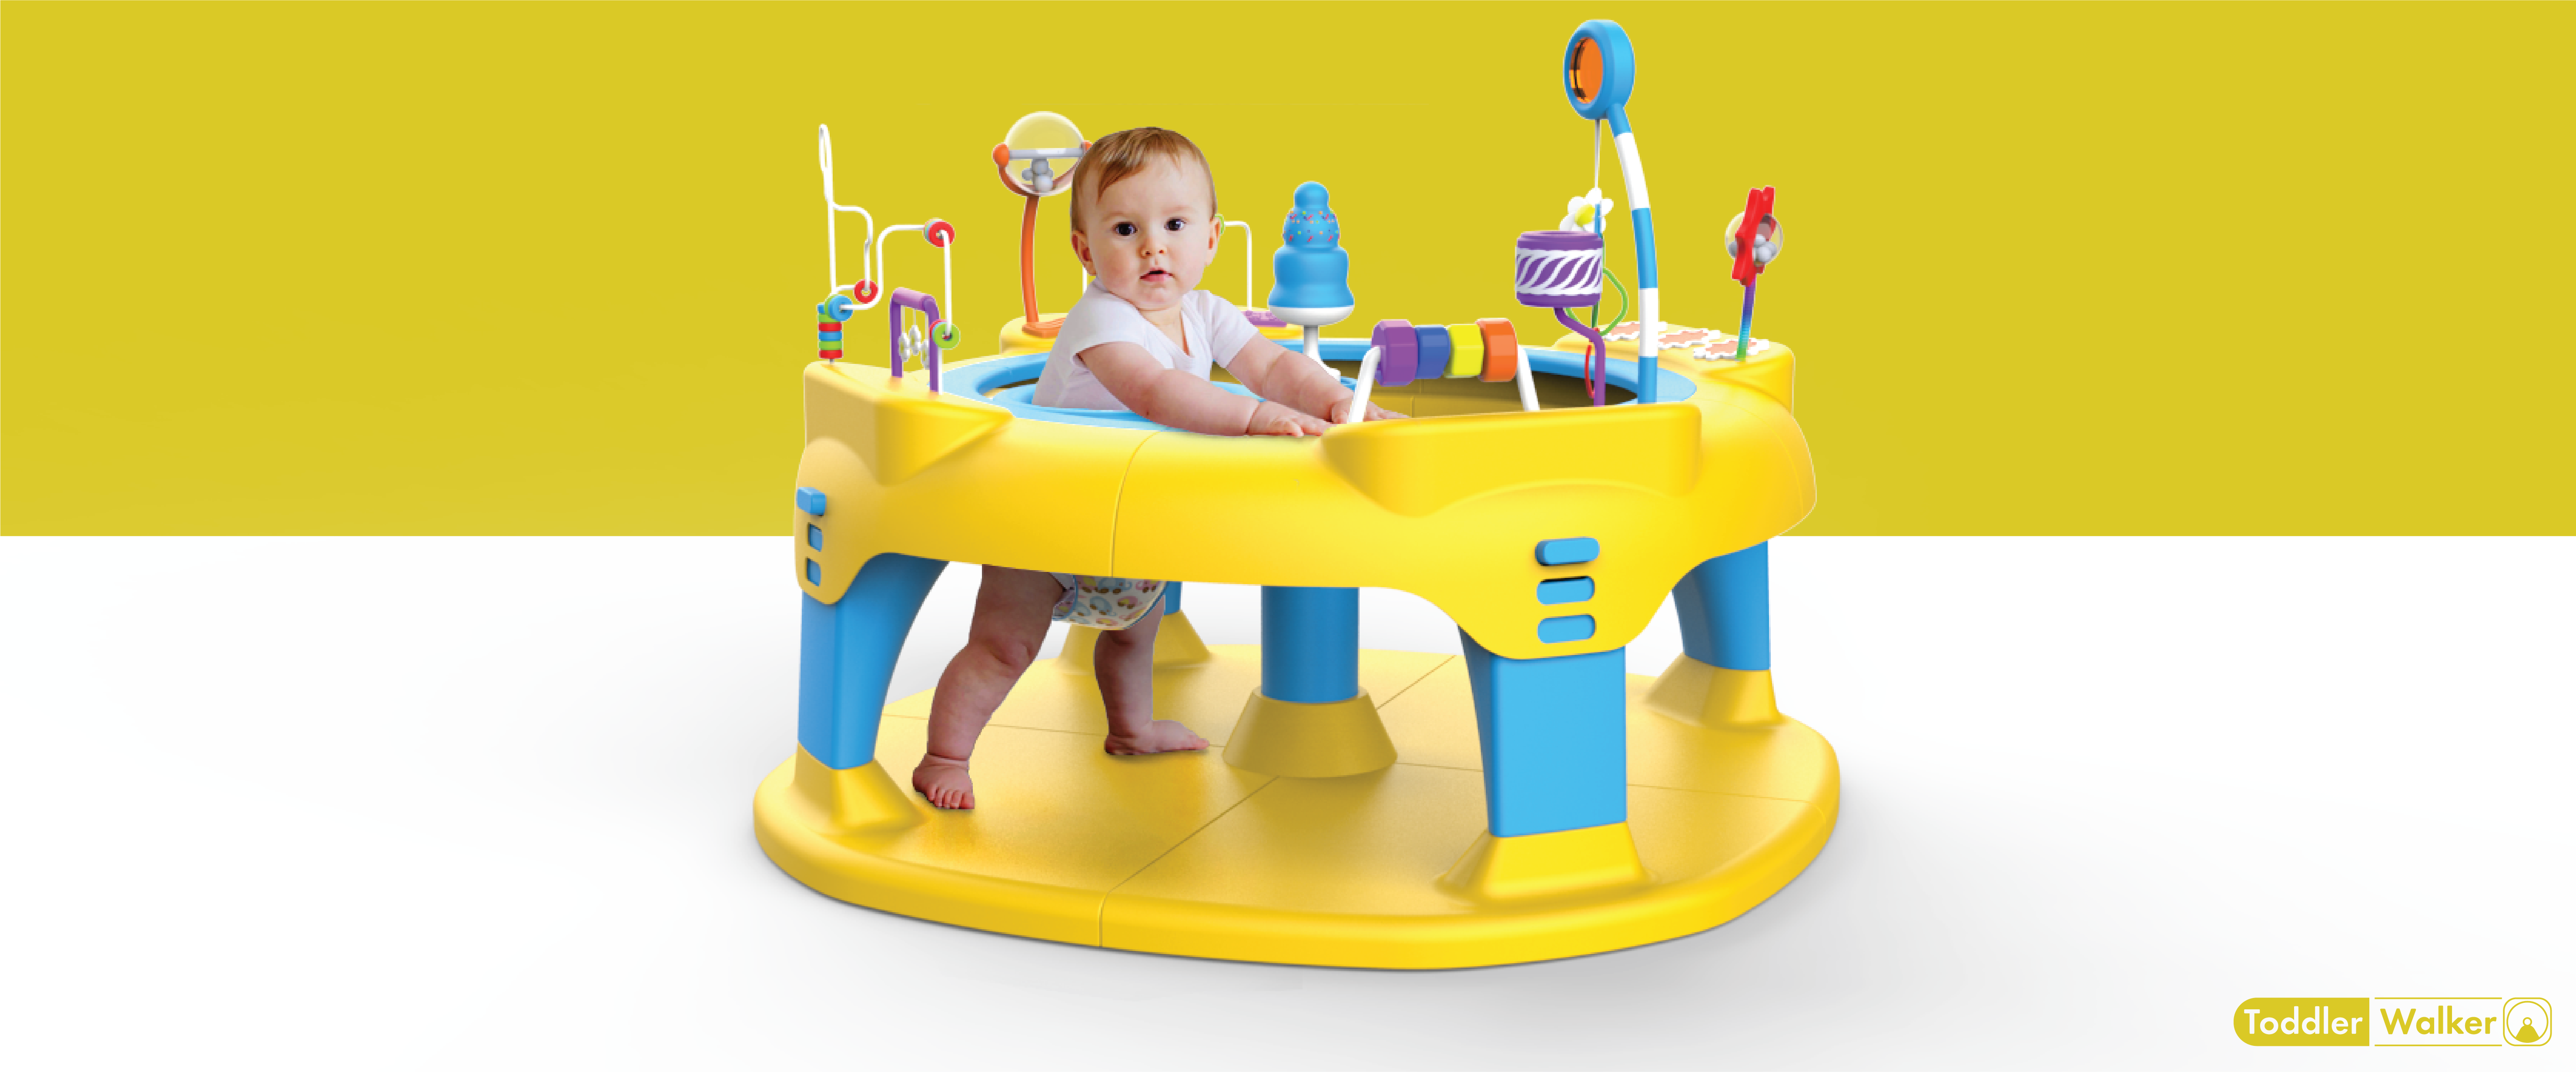 Products Developed at our Product Design Firm - Toddler Walker